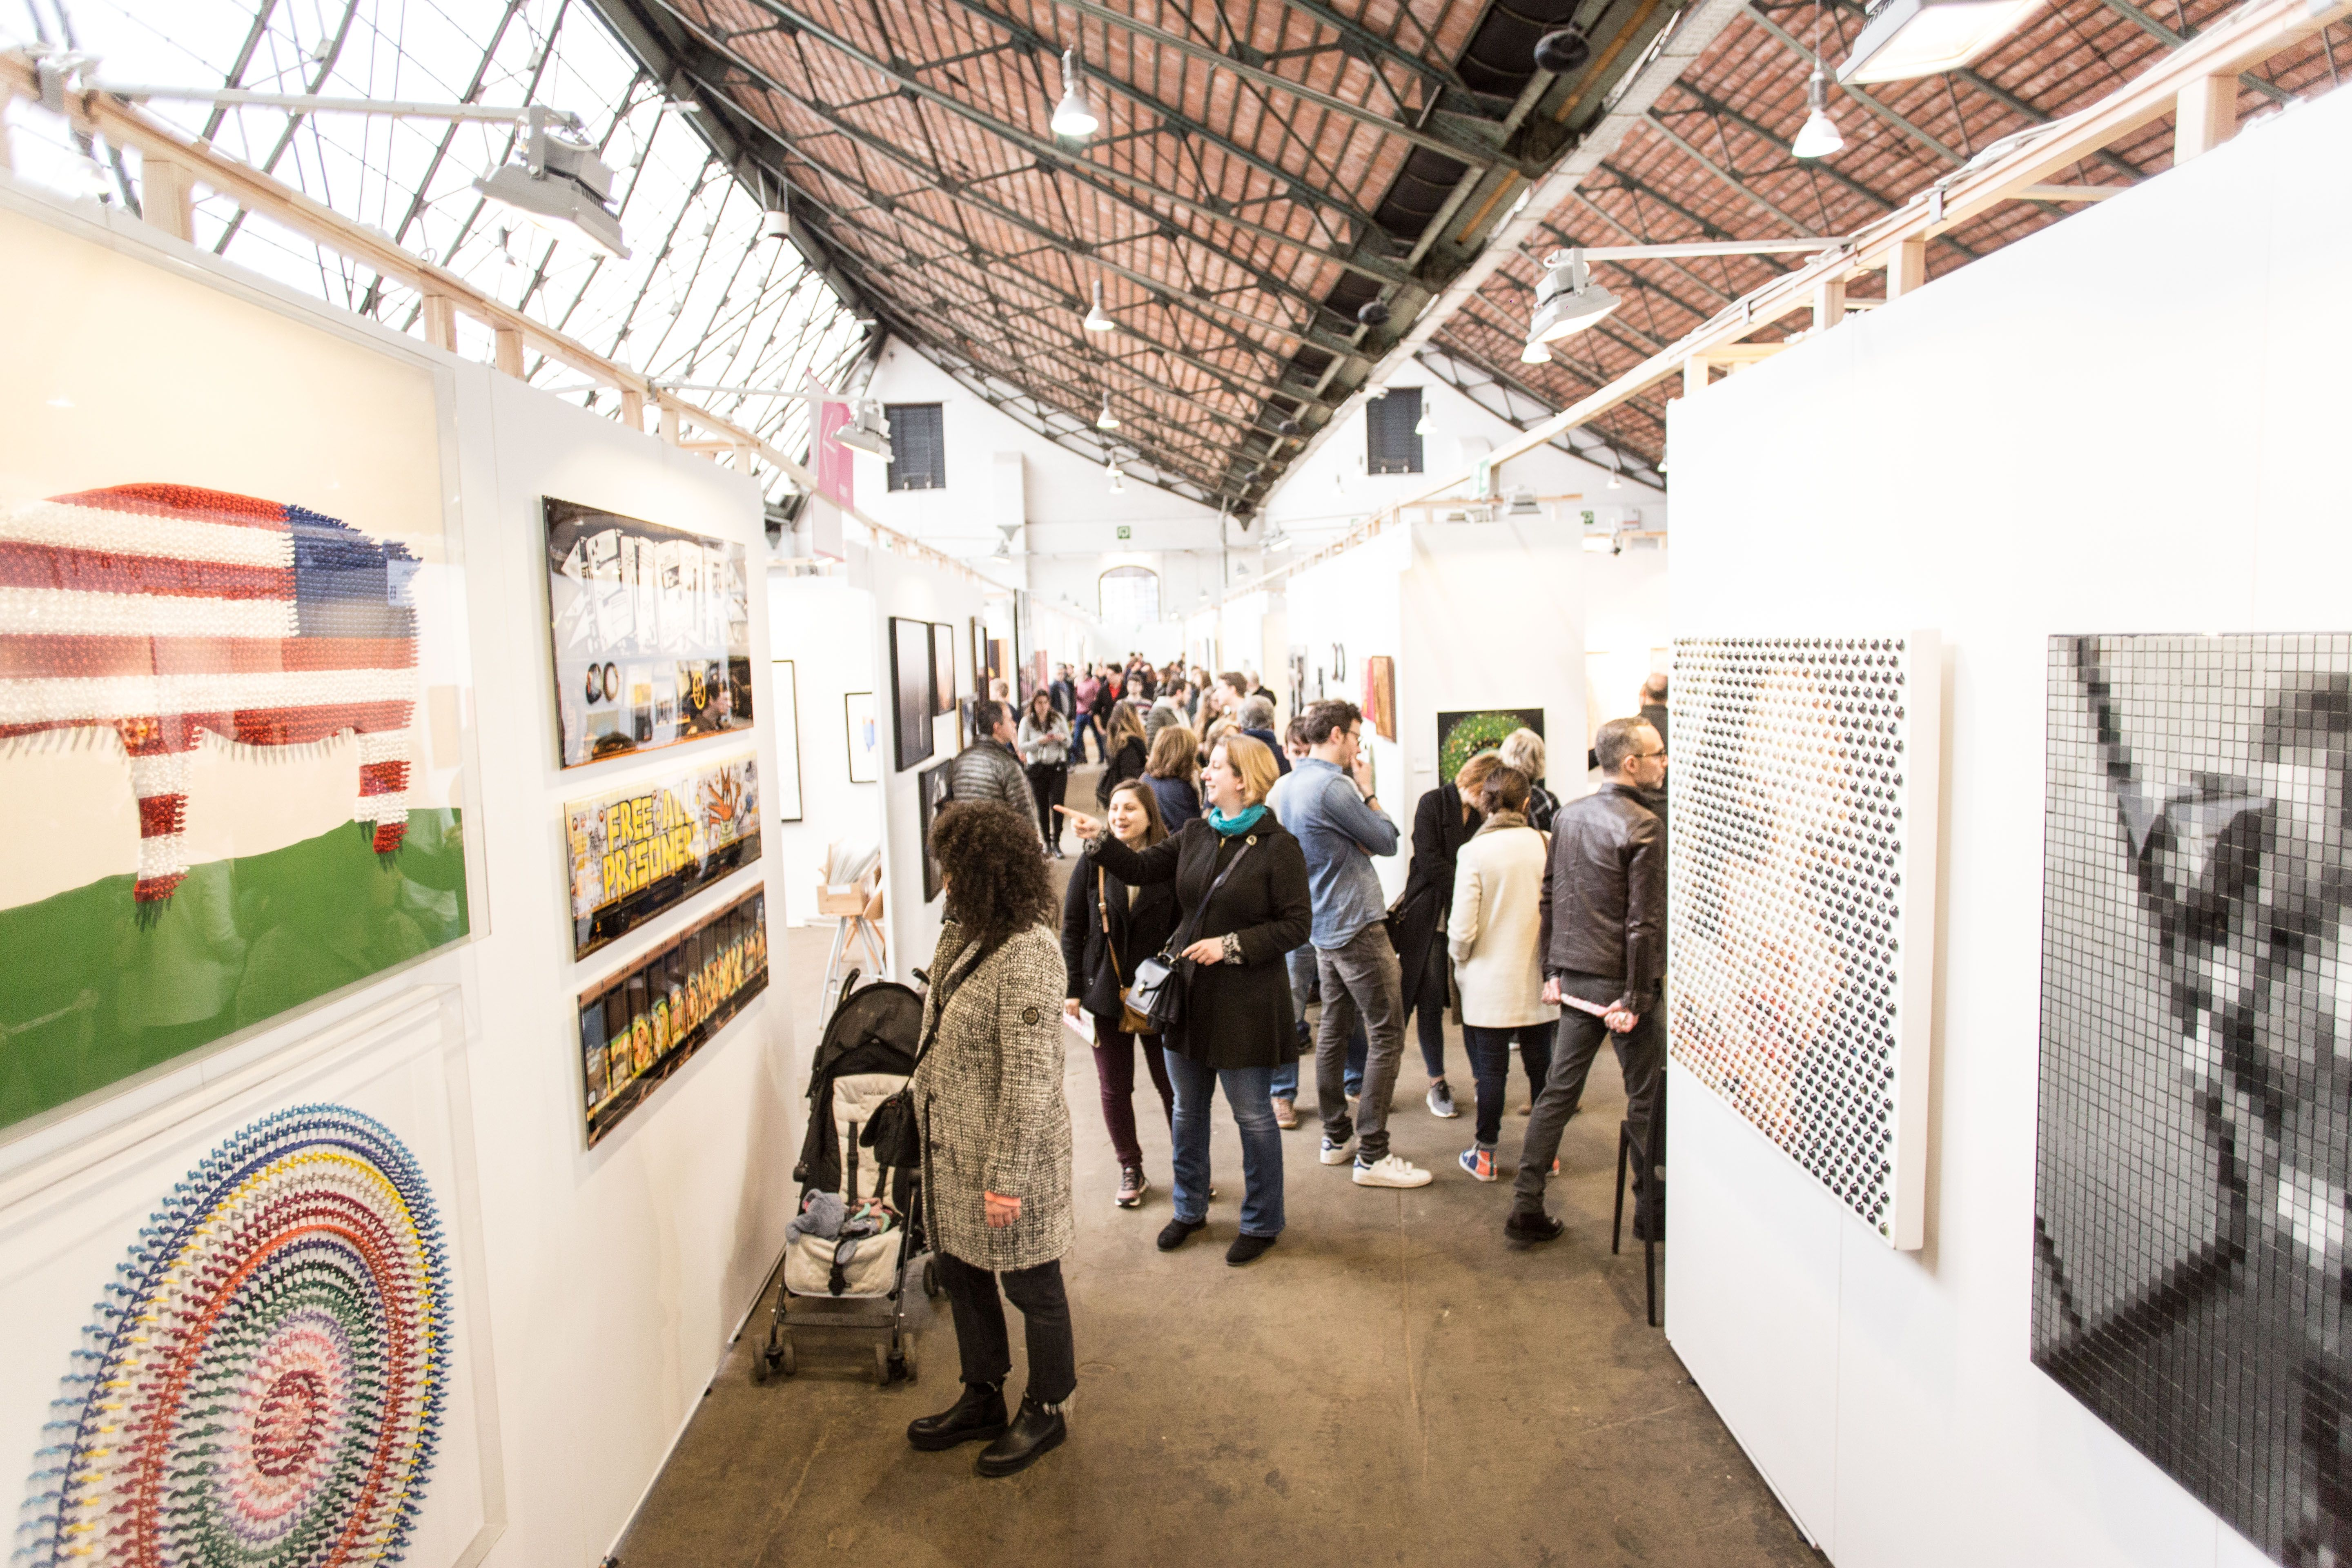 Affordable Art Fair Brussels 2017 Aafbrussels Affordableartfair Takearthome Art Contemporaryart Artfair Buyart Br Affordable Art Fair Brussel Art Fair